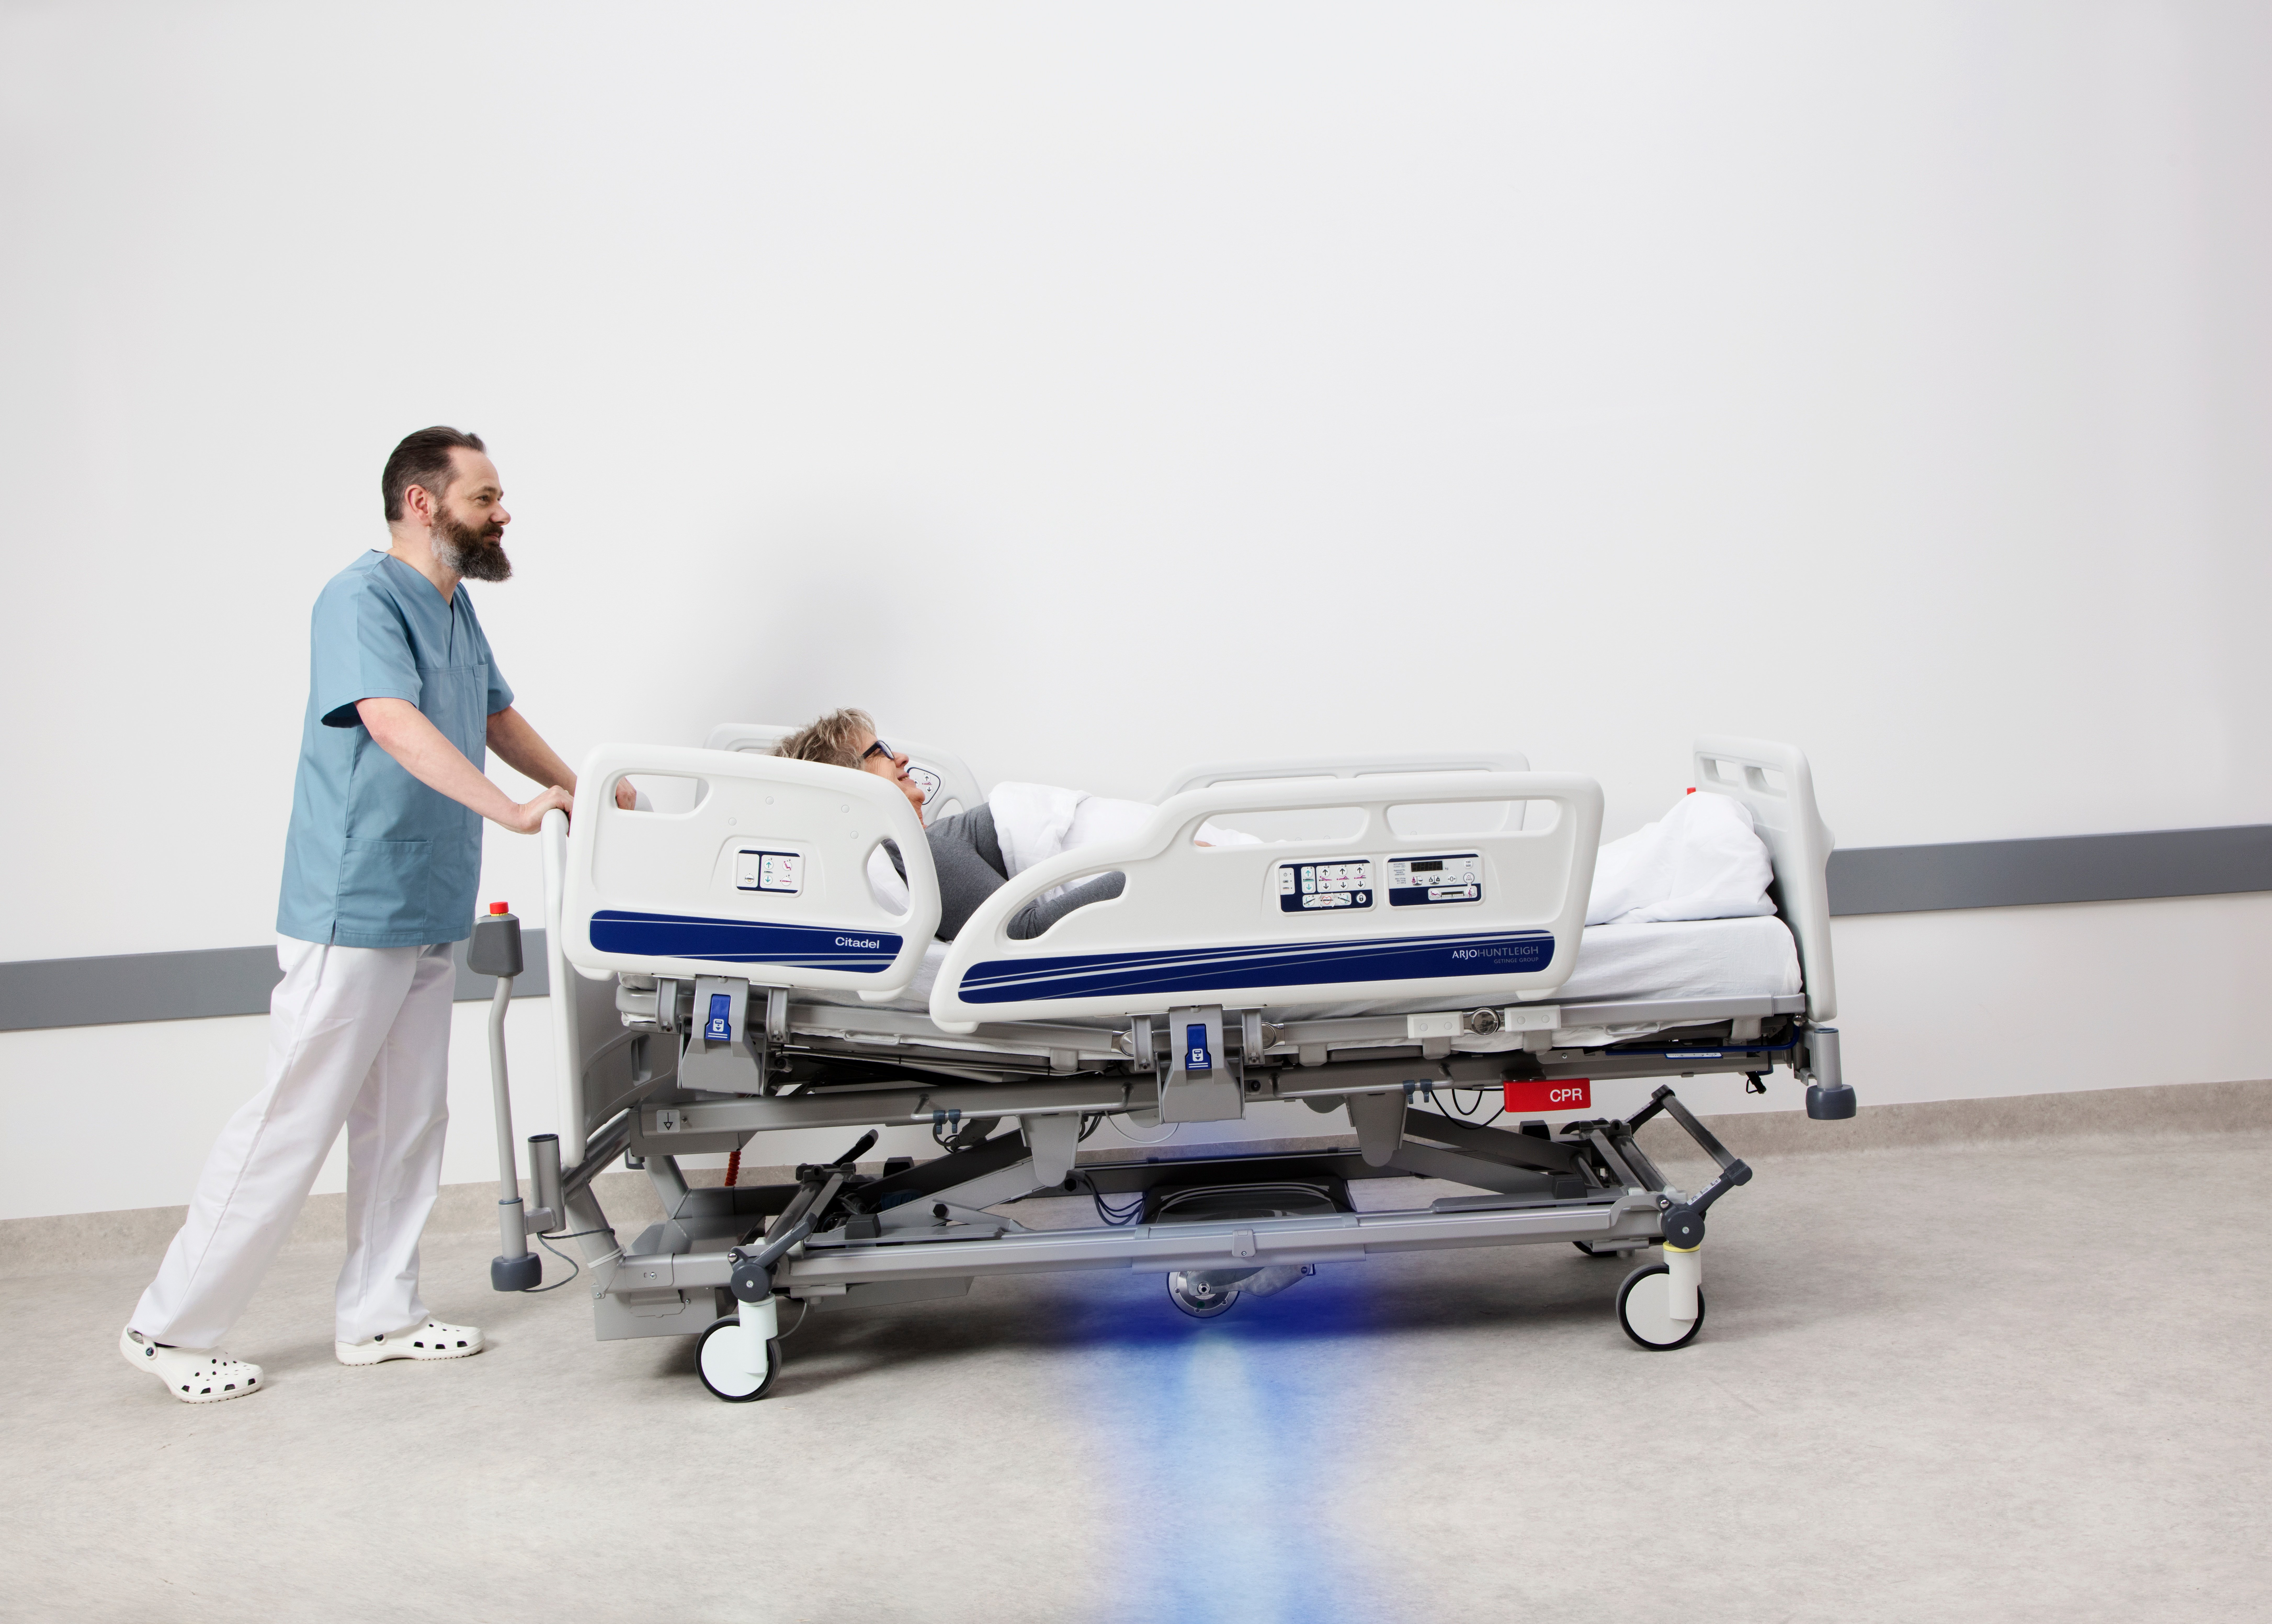 Which technologies are used to aid caregivers in transporting patients on hospital beds?